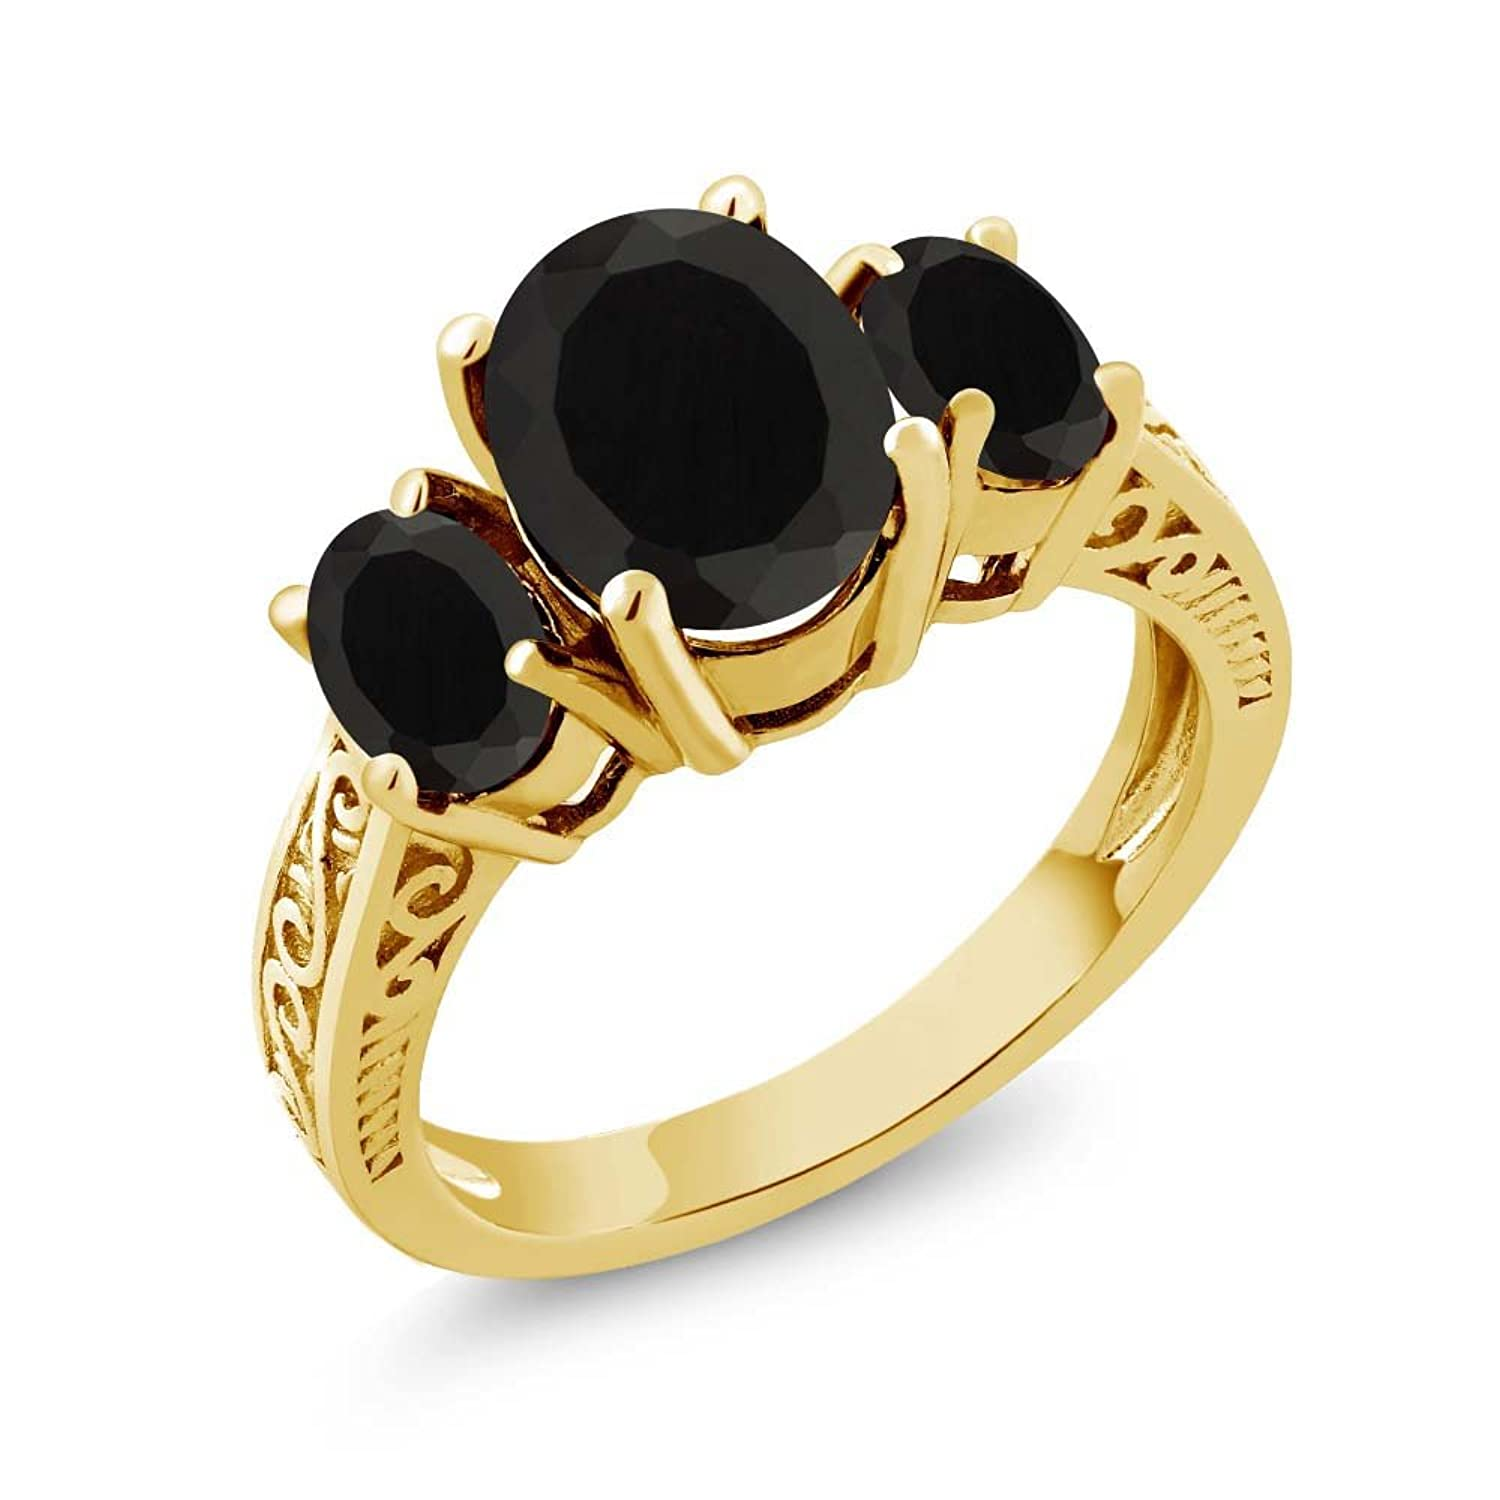 2.41 Ct Oval Black AAA Onyx 925 Yellow Gold Plated Silver 3-Stone Women's Ring (Available in size 5, 6, 7, 8, 9)